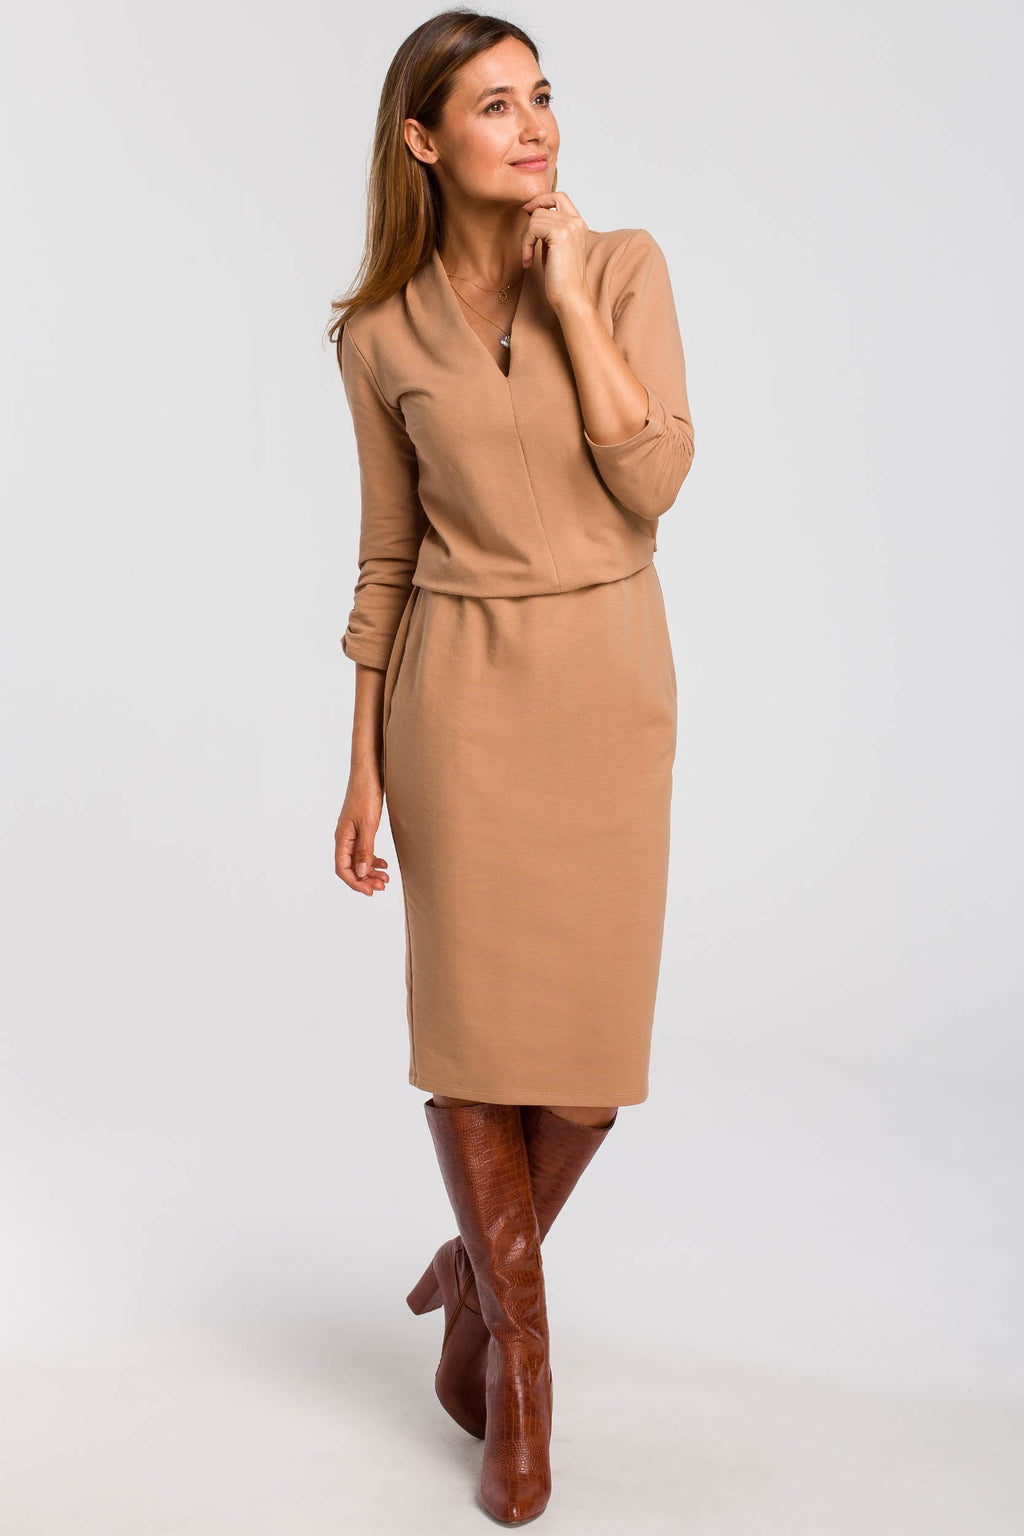 Elastic Waist Cappuccino Midi Cotton Dress With Gathered Sleeves - So Chic Boutique